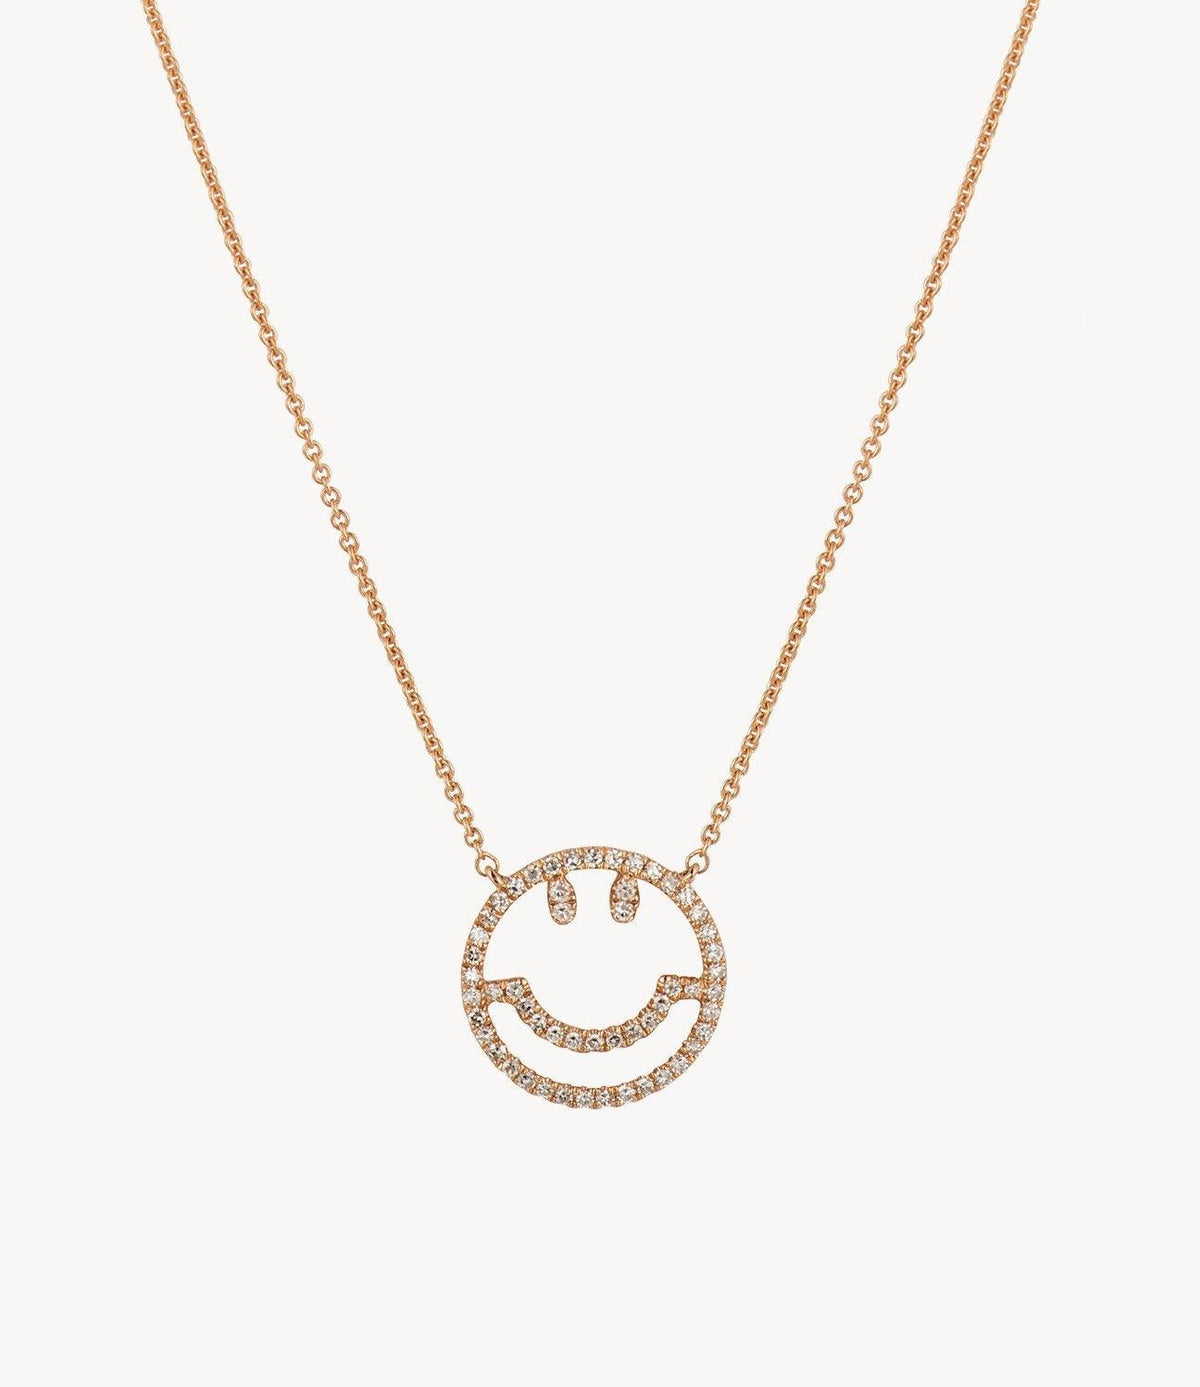 Have a Nice Day Diamond Necklace